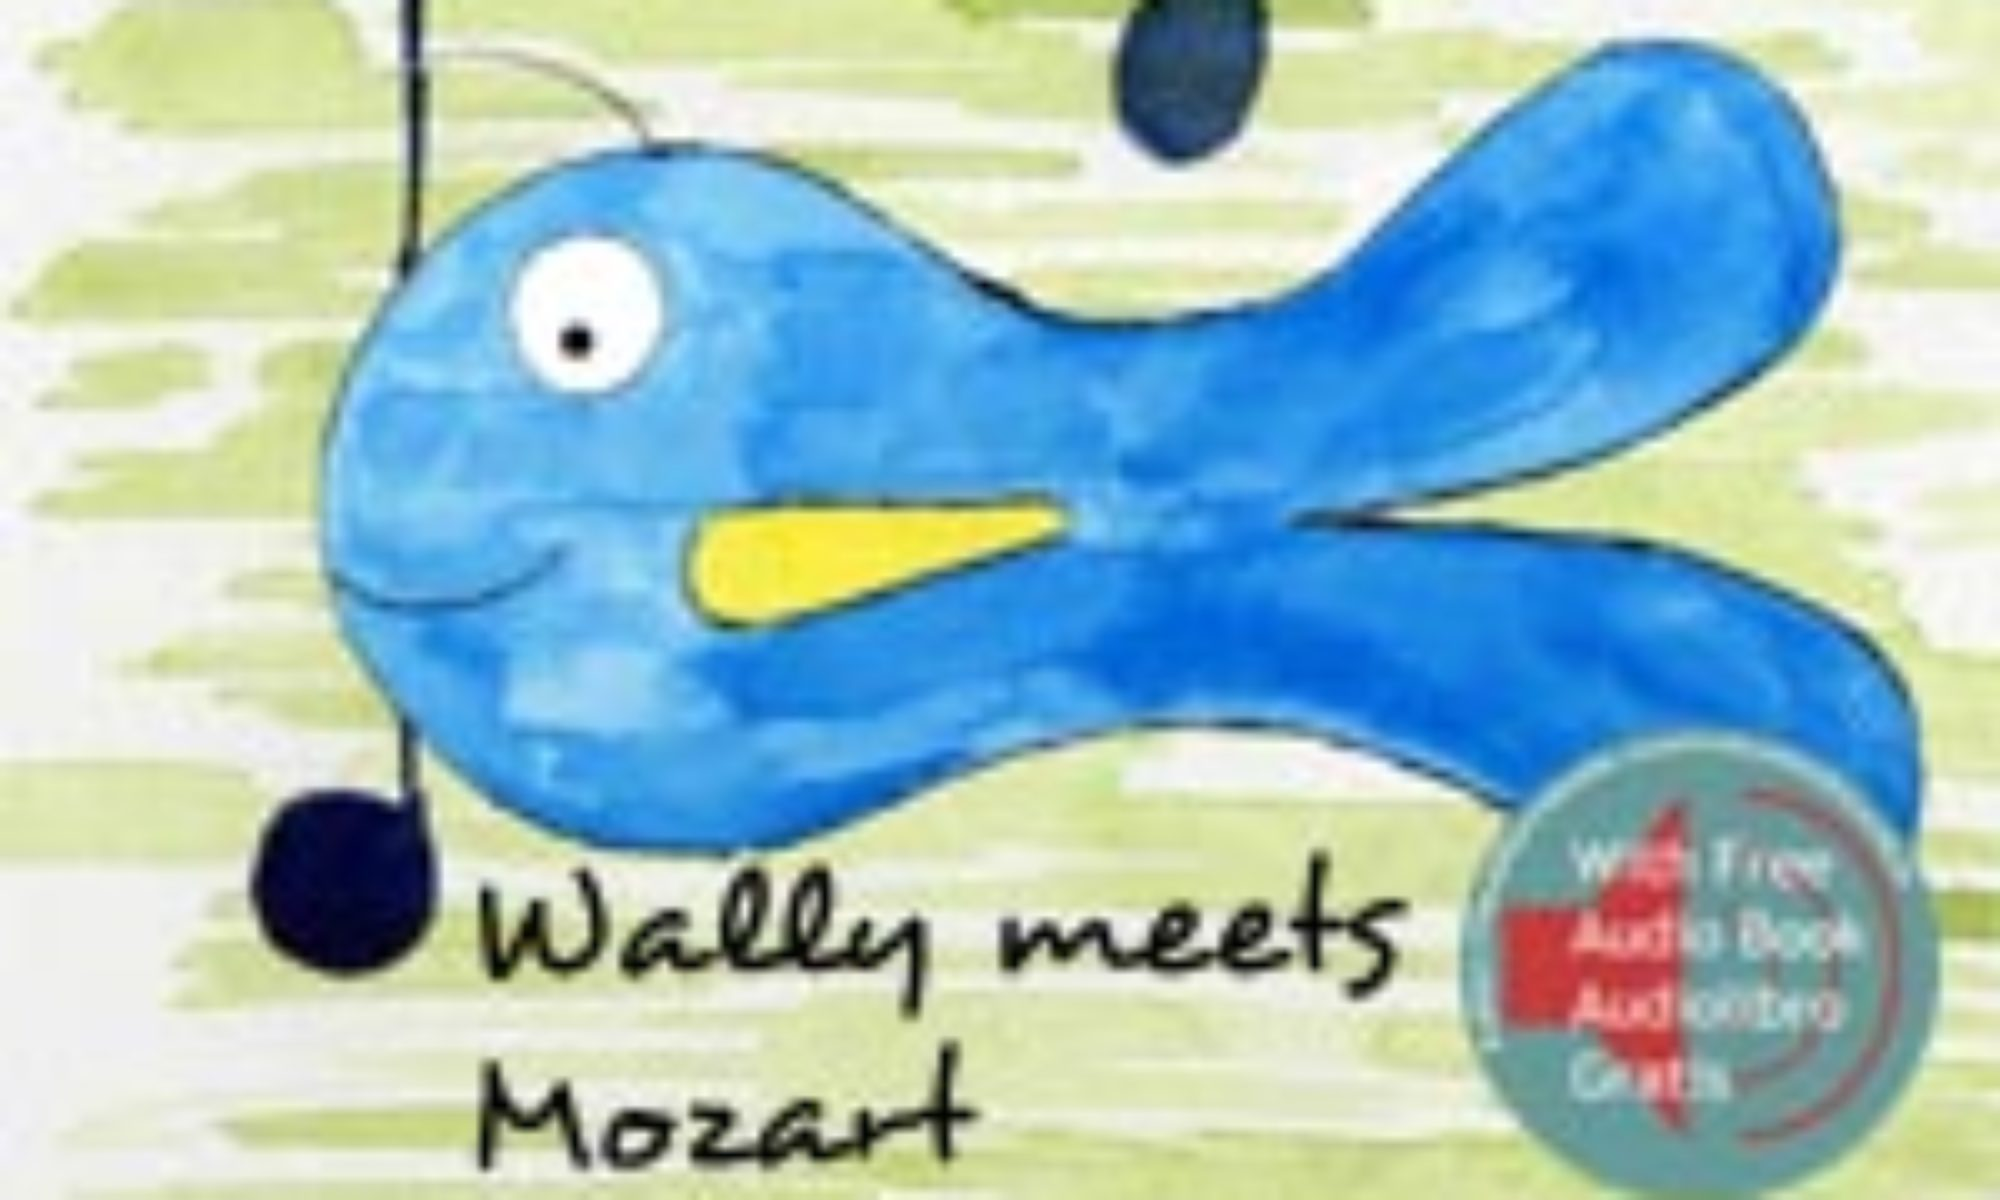 Wallymeets Kids Books